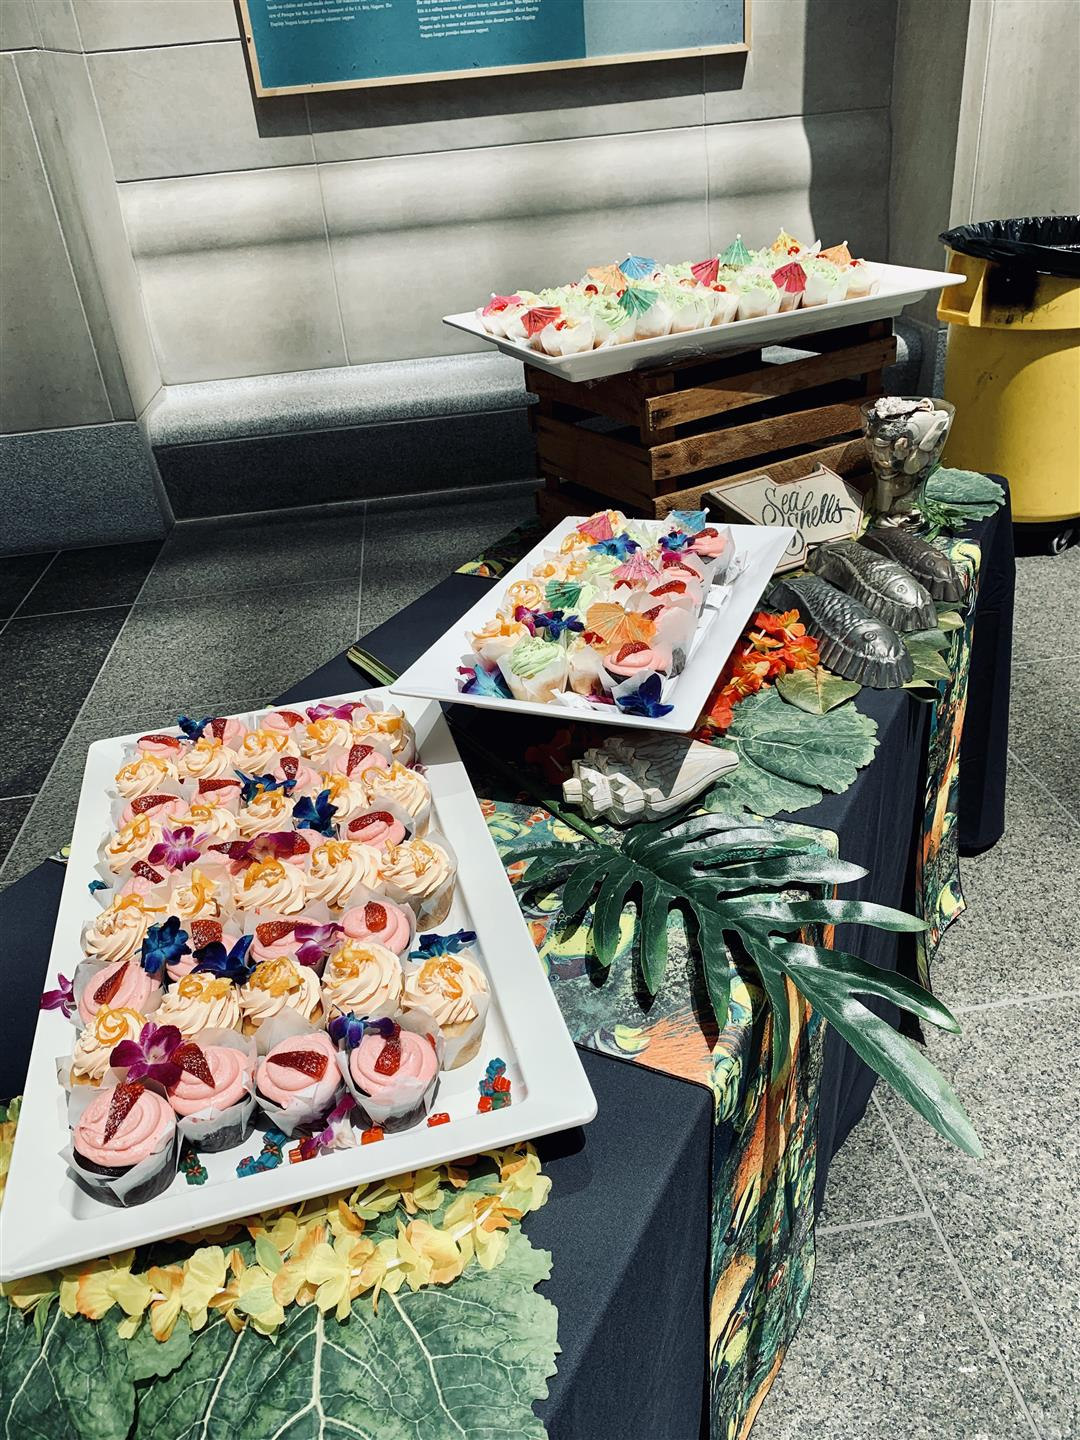 cupcakes displayed on a wooden crate and on a black table cloth with tropical decorations